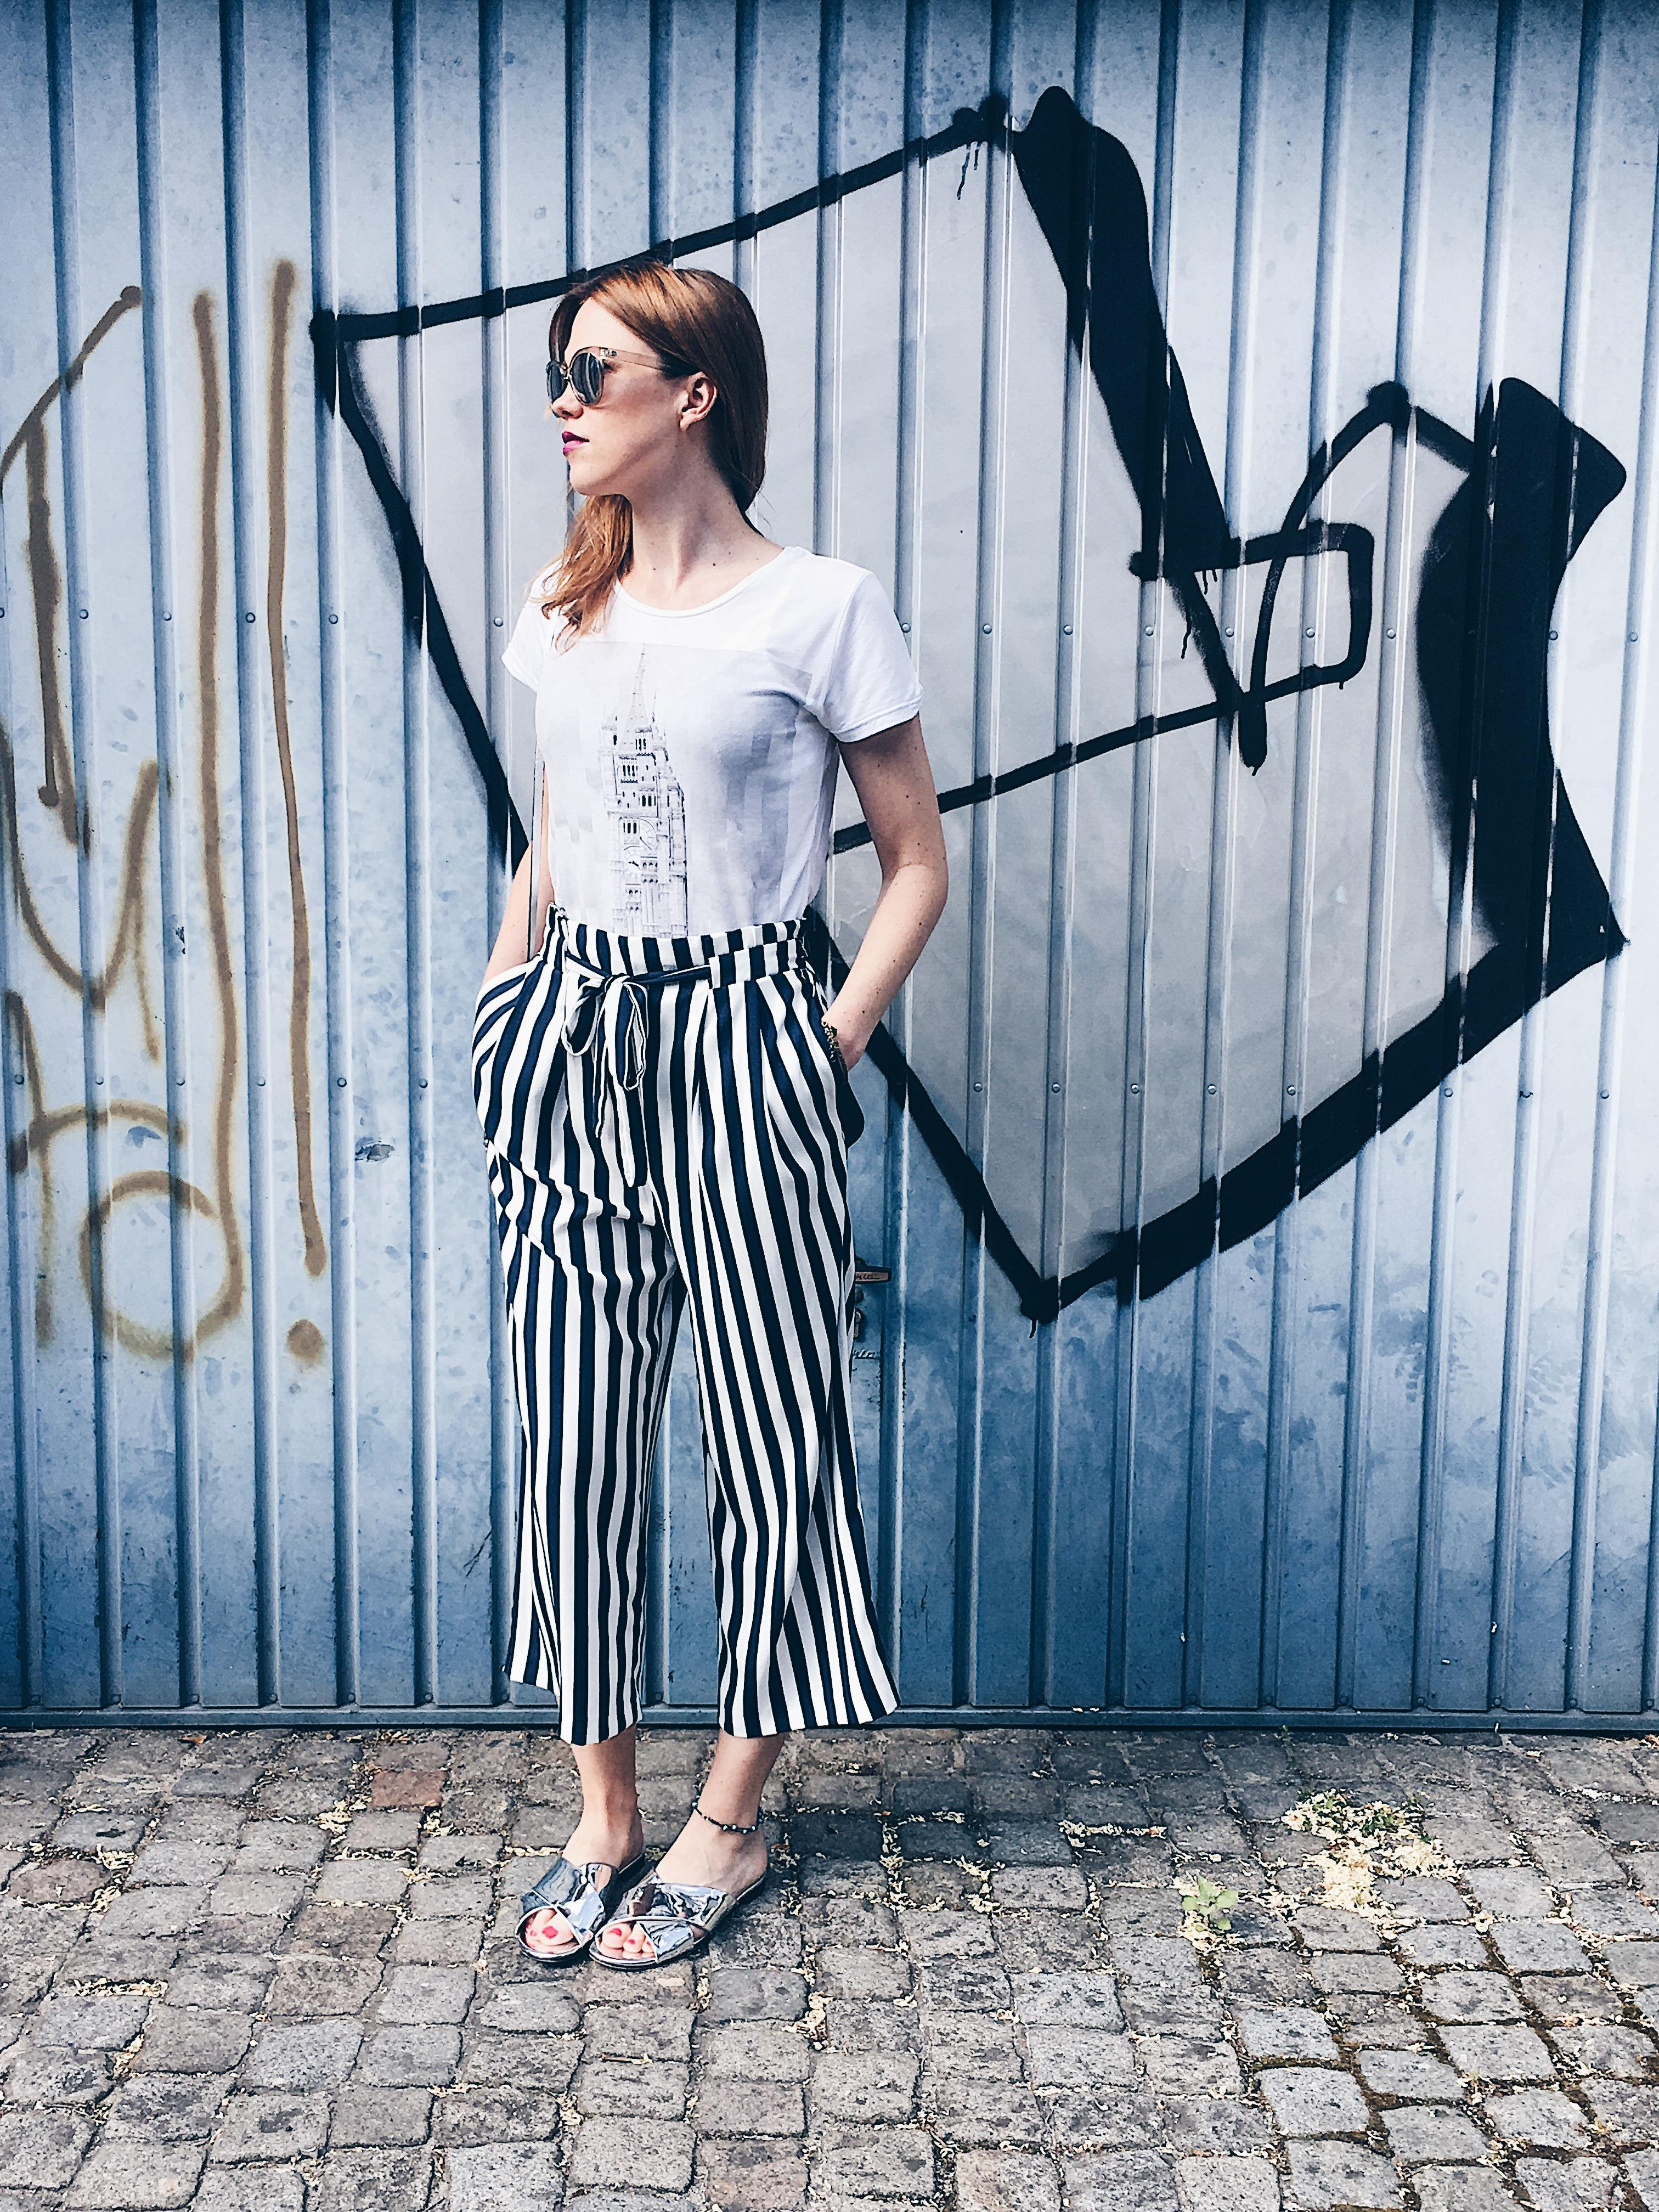 Streetstyle...💙 #outfitinspiration #ootd #fashion #stripes #casual #streetstyle